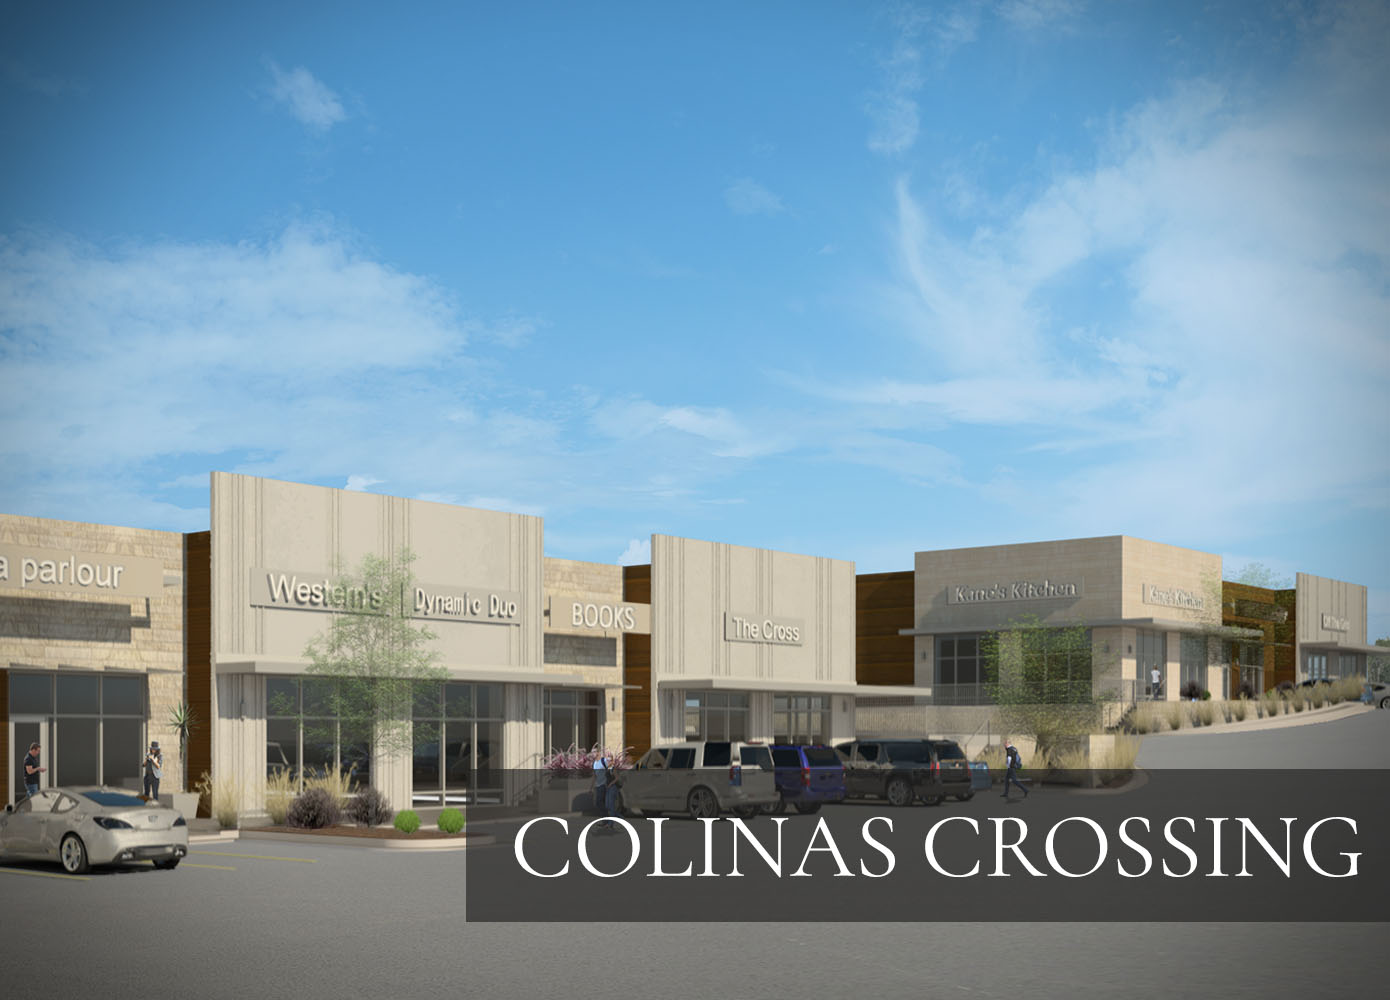 Colinas_Crossing_img1